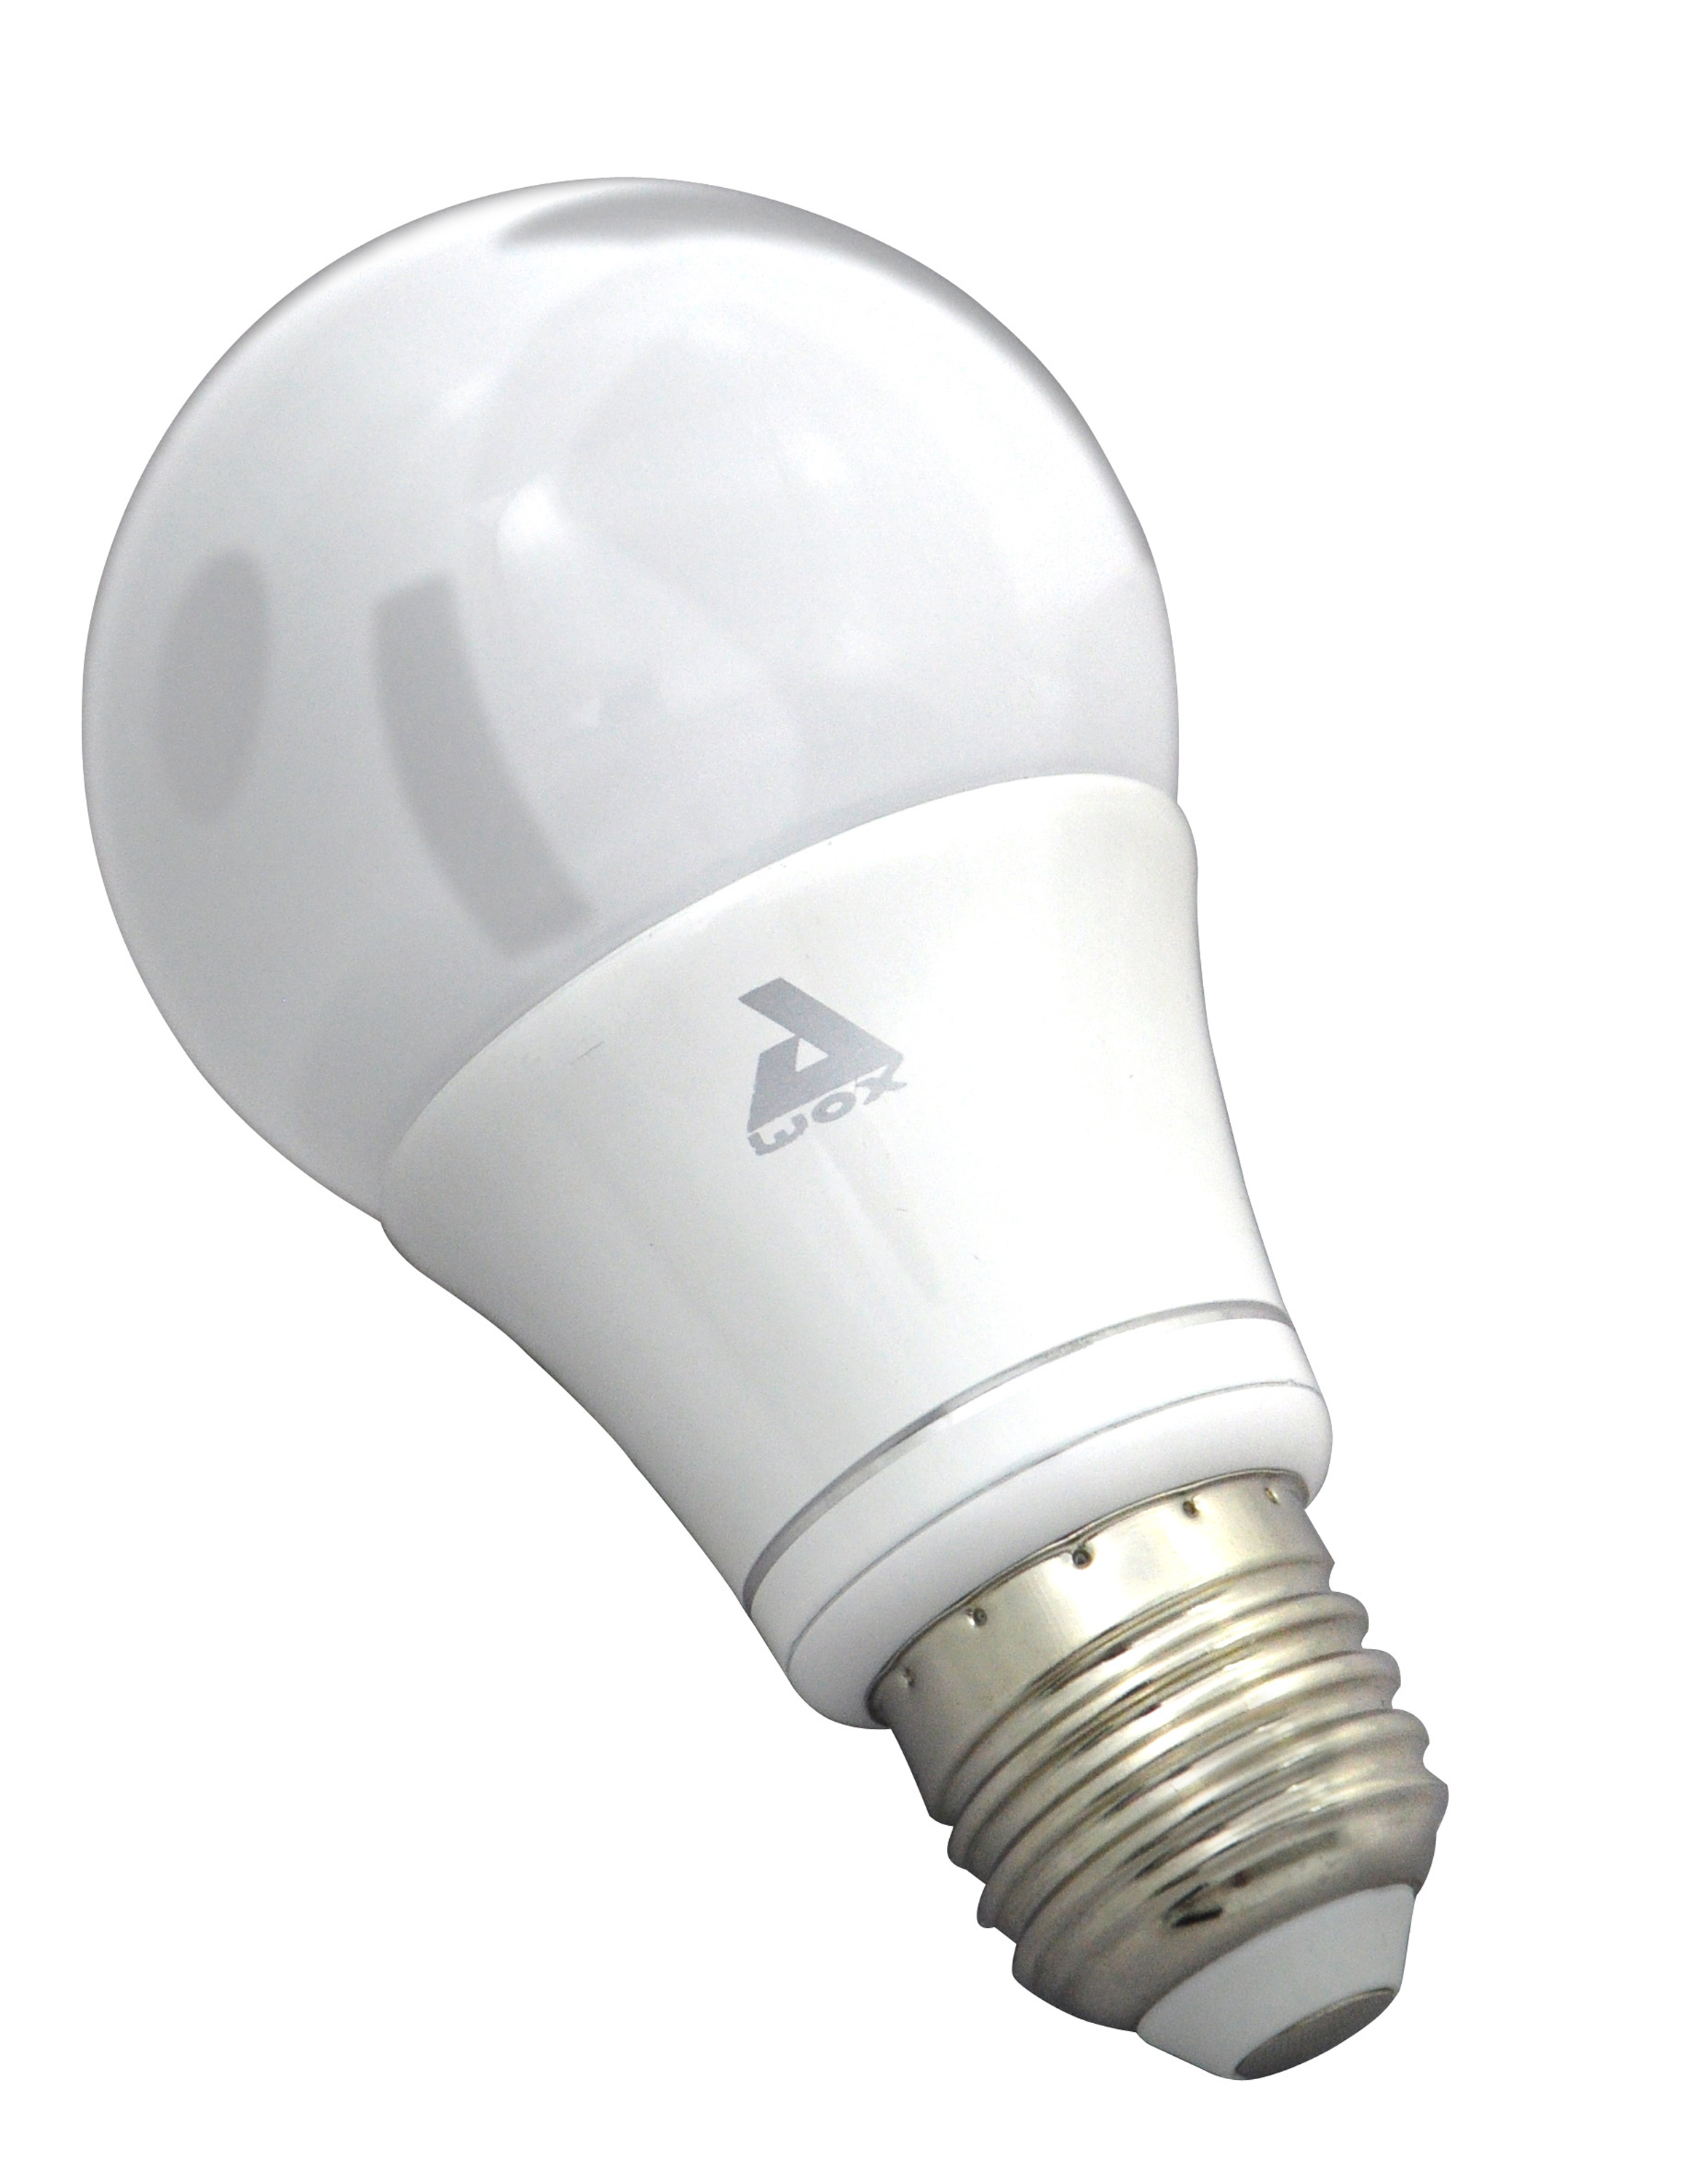 SML2-W7 LED 7W E27, BT control, white